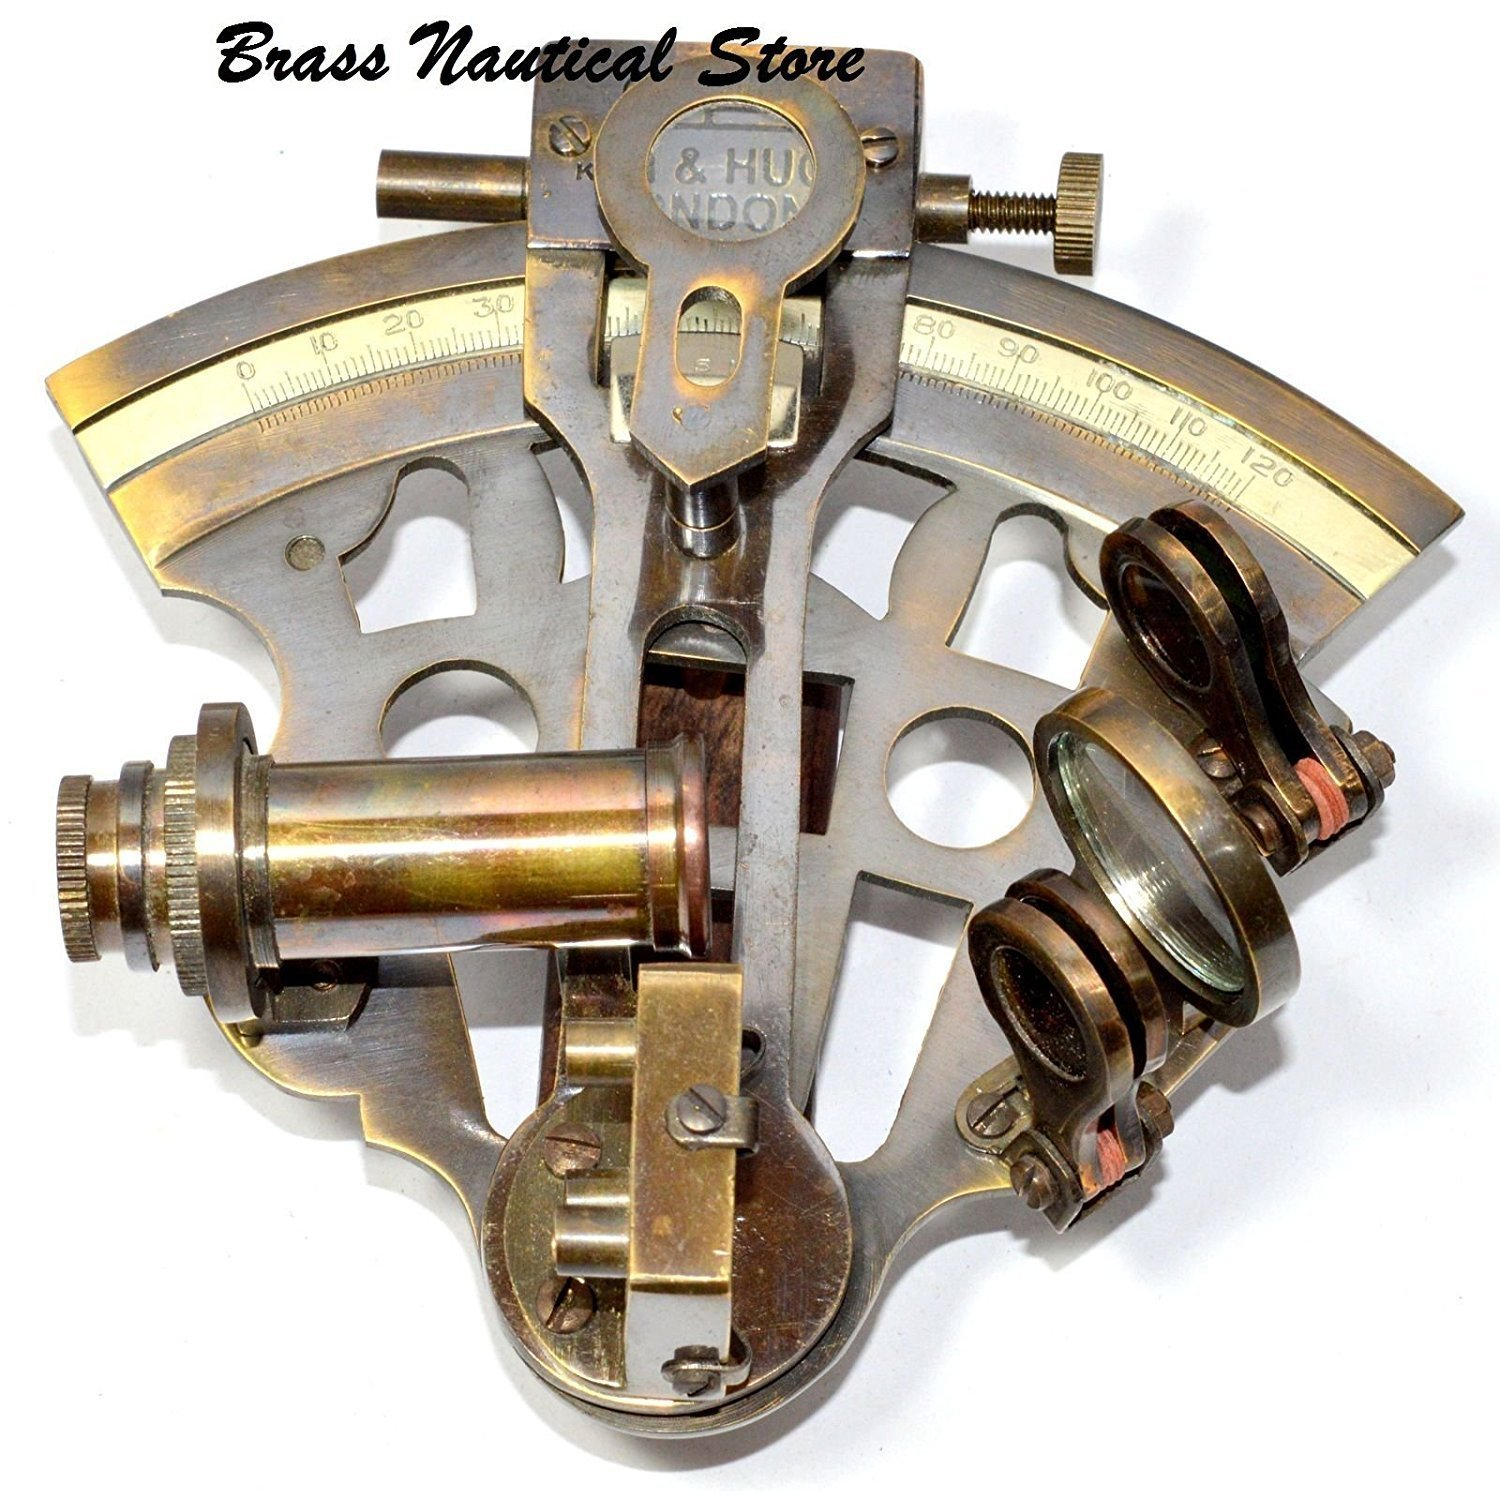 Hello Nauticals Store MARINE COLLECTIBLE NAUTICAL BRASS WORKING SHIP ASTROLABE SEXTANT VINTAGE STYLE.